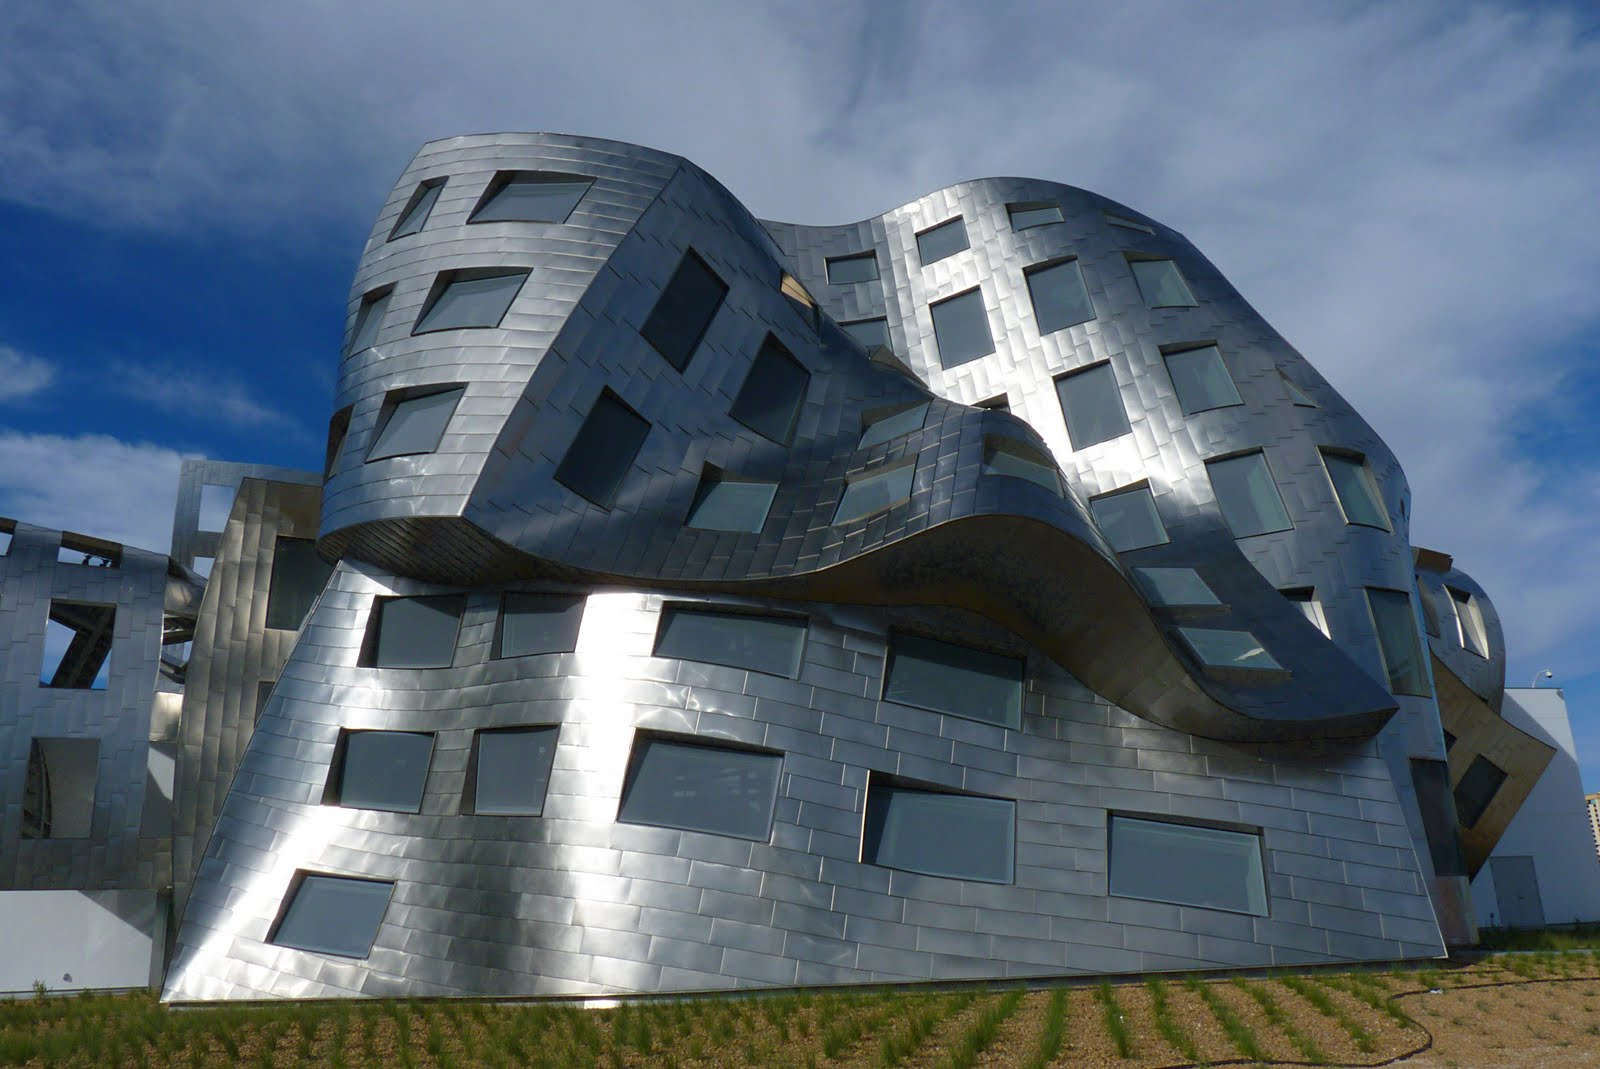 frank gehry architecture: